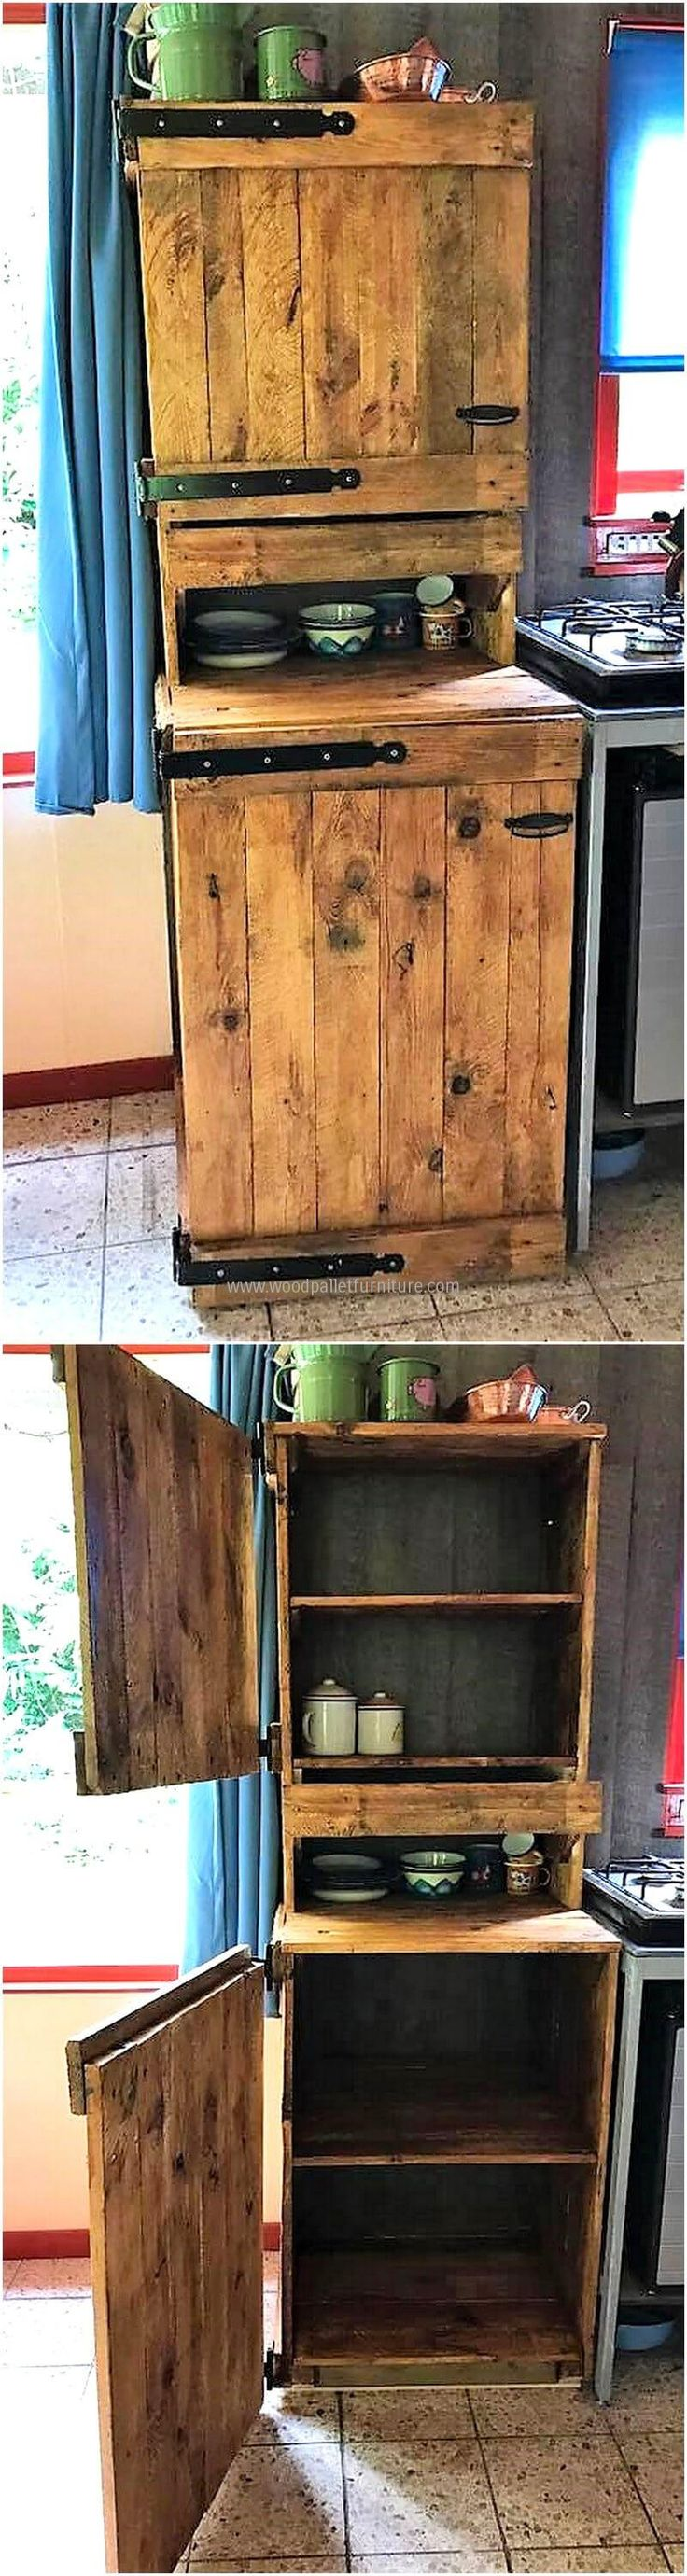 See an idea for the storage in